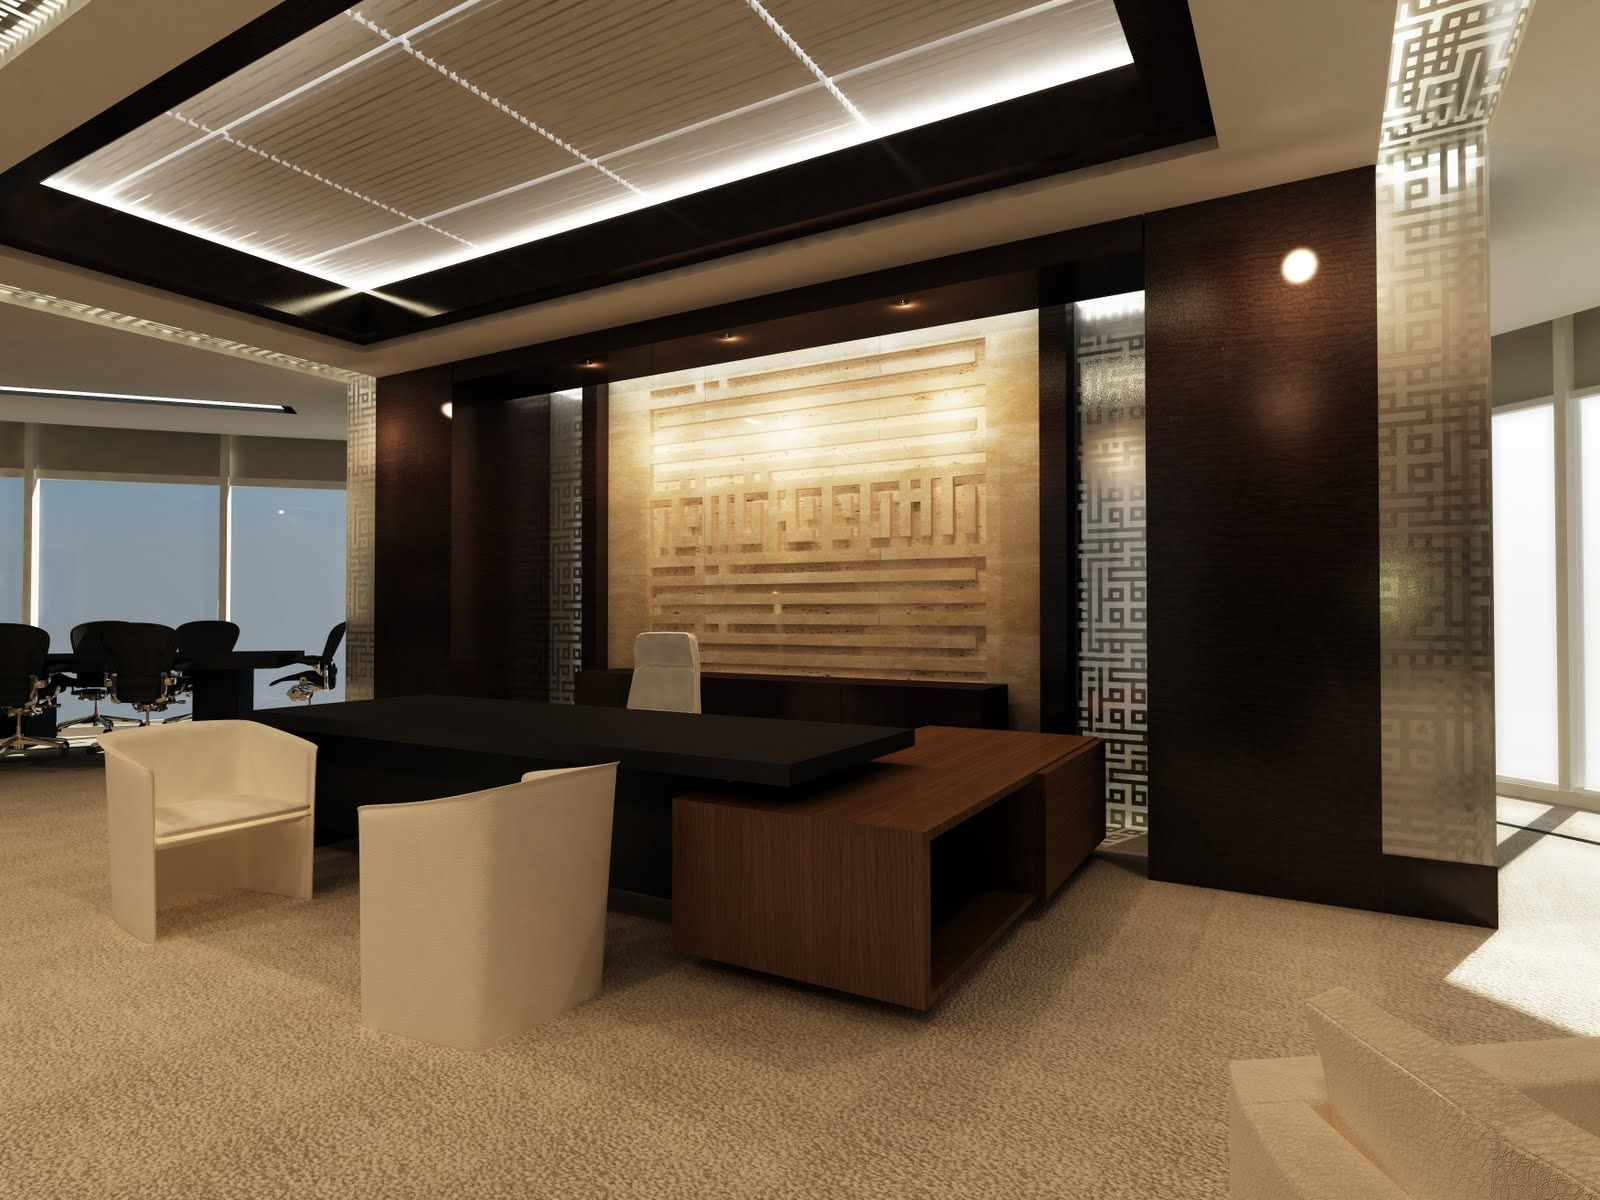 Office interior design intended for office interior design for Modern interior design for office